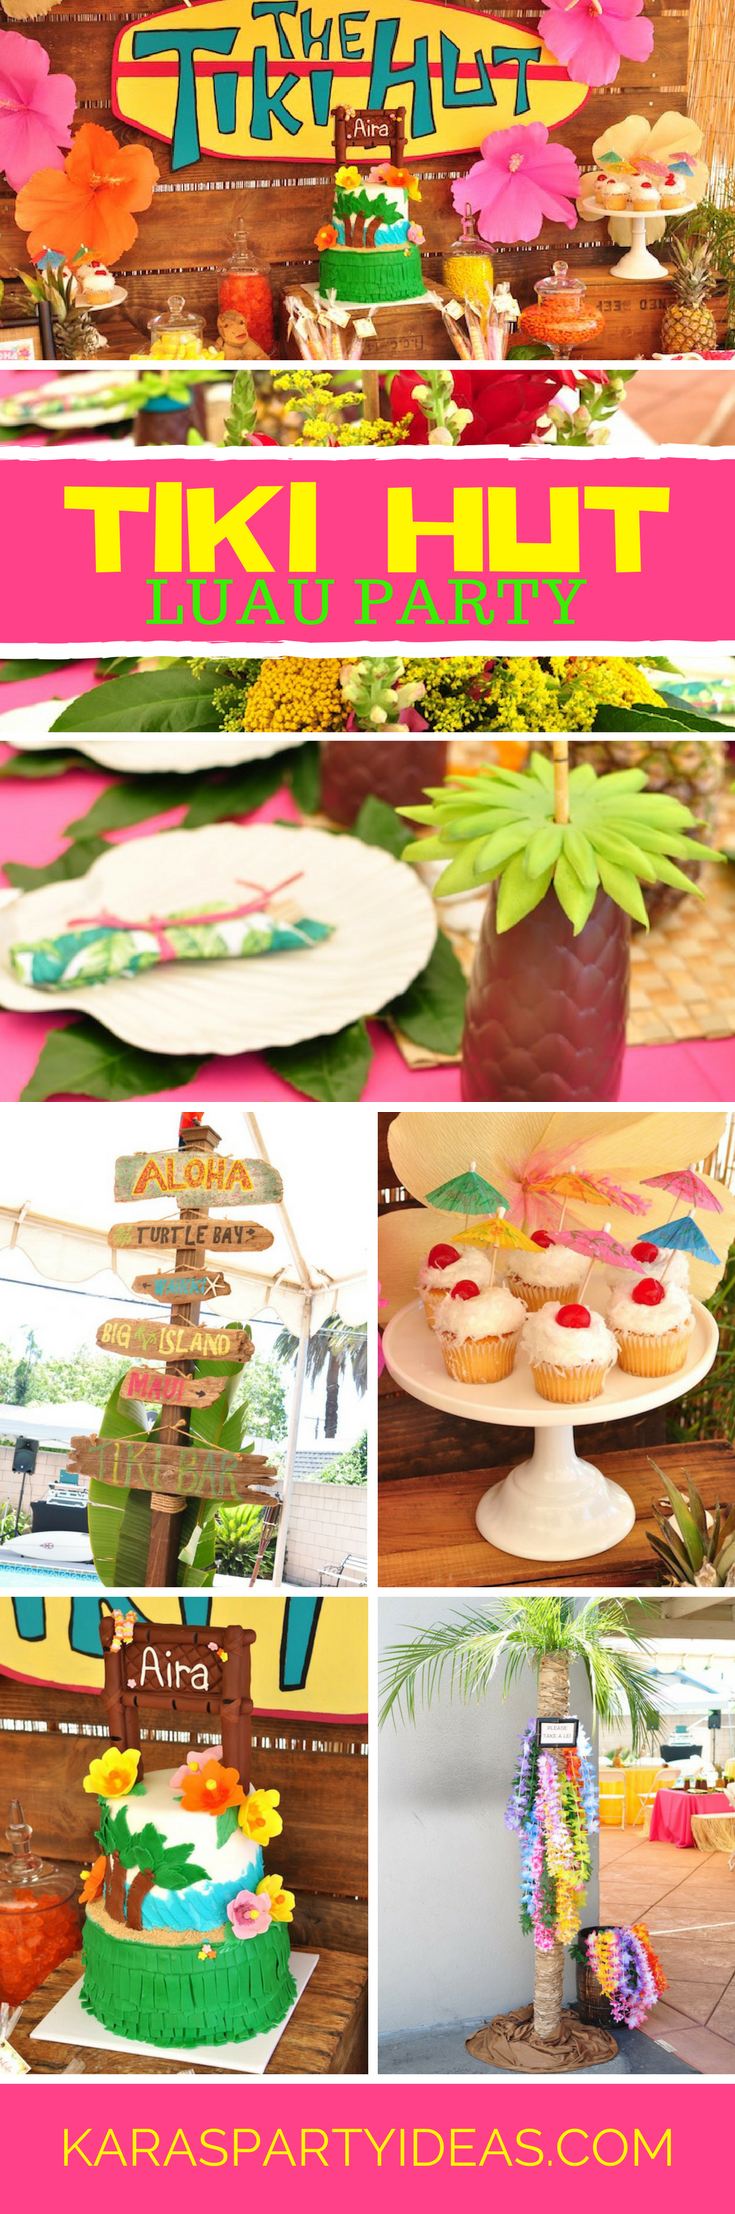 Tiki Hut Luau Party via Kara's Party Ideas - KarasPartyIdeas.com